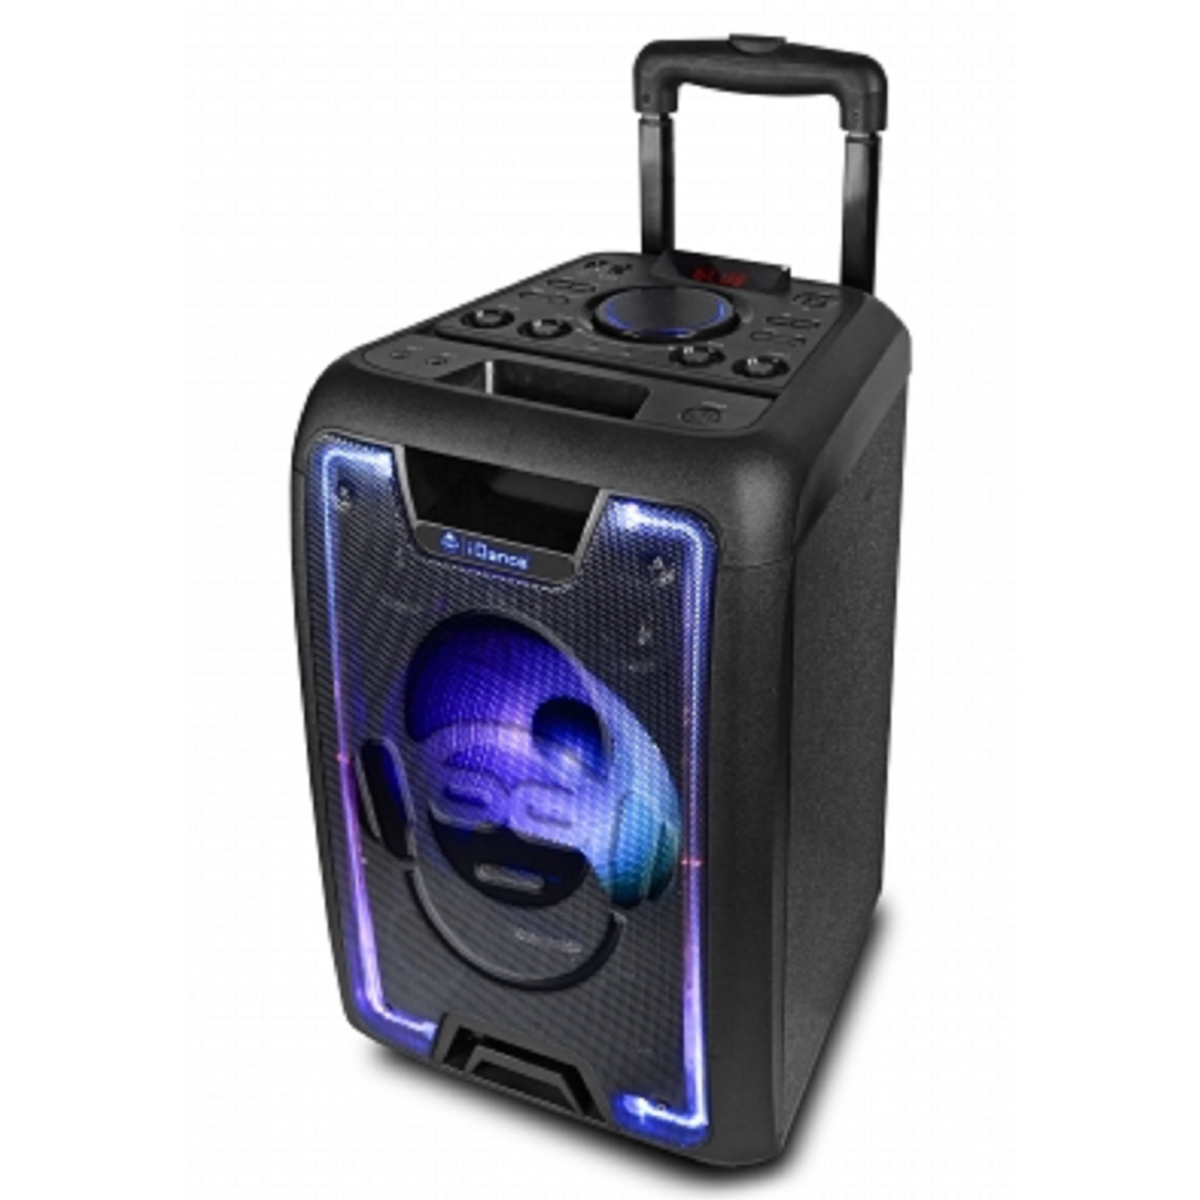 Trolley Lautsprecher Idance Idance Megabox 1000 200w Portable Bluetooth Sound And Light Party System Costco Uk